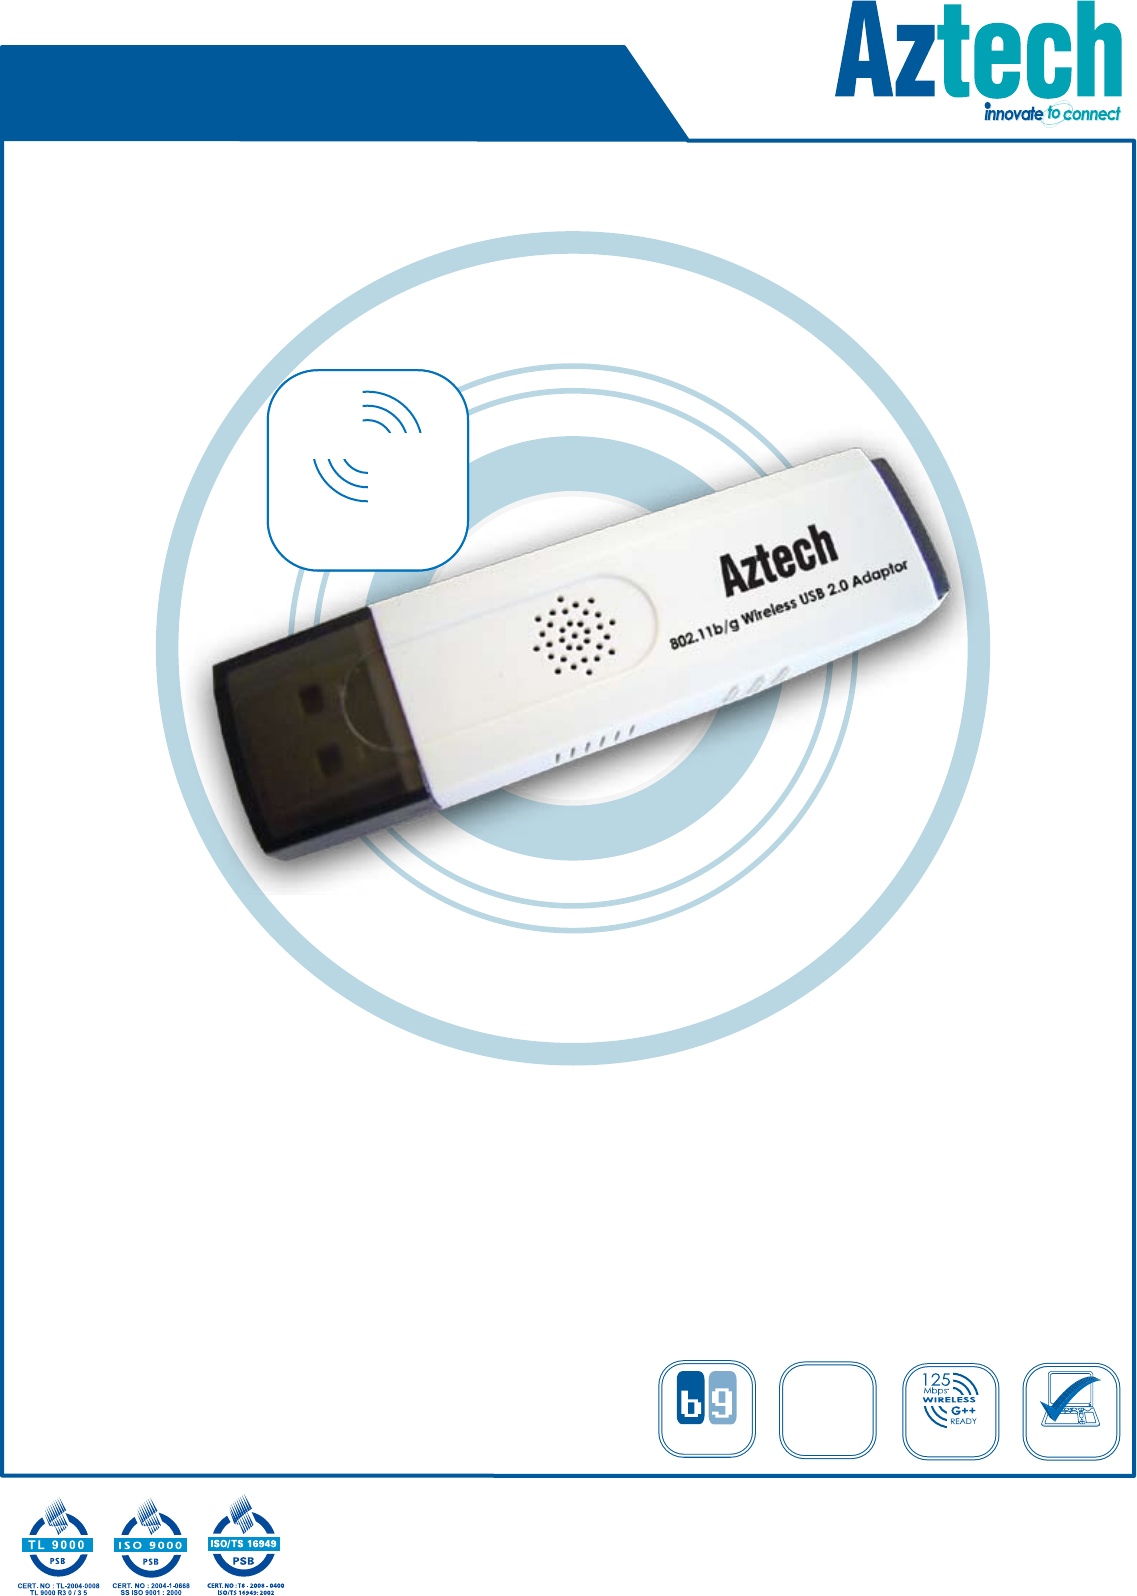 AZTECH 802.11BG WIRELESS USB 2.0 ADAPTOR DRIVERS DOWNLOAD